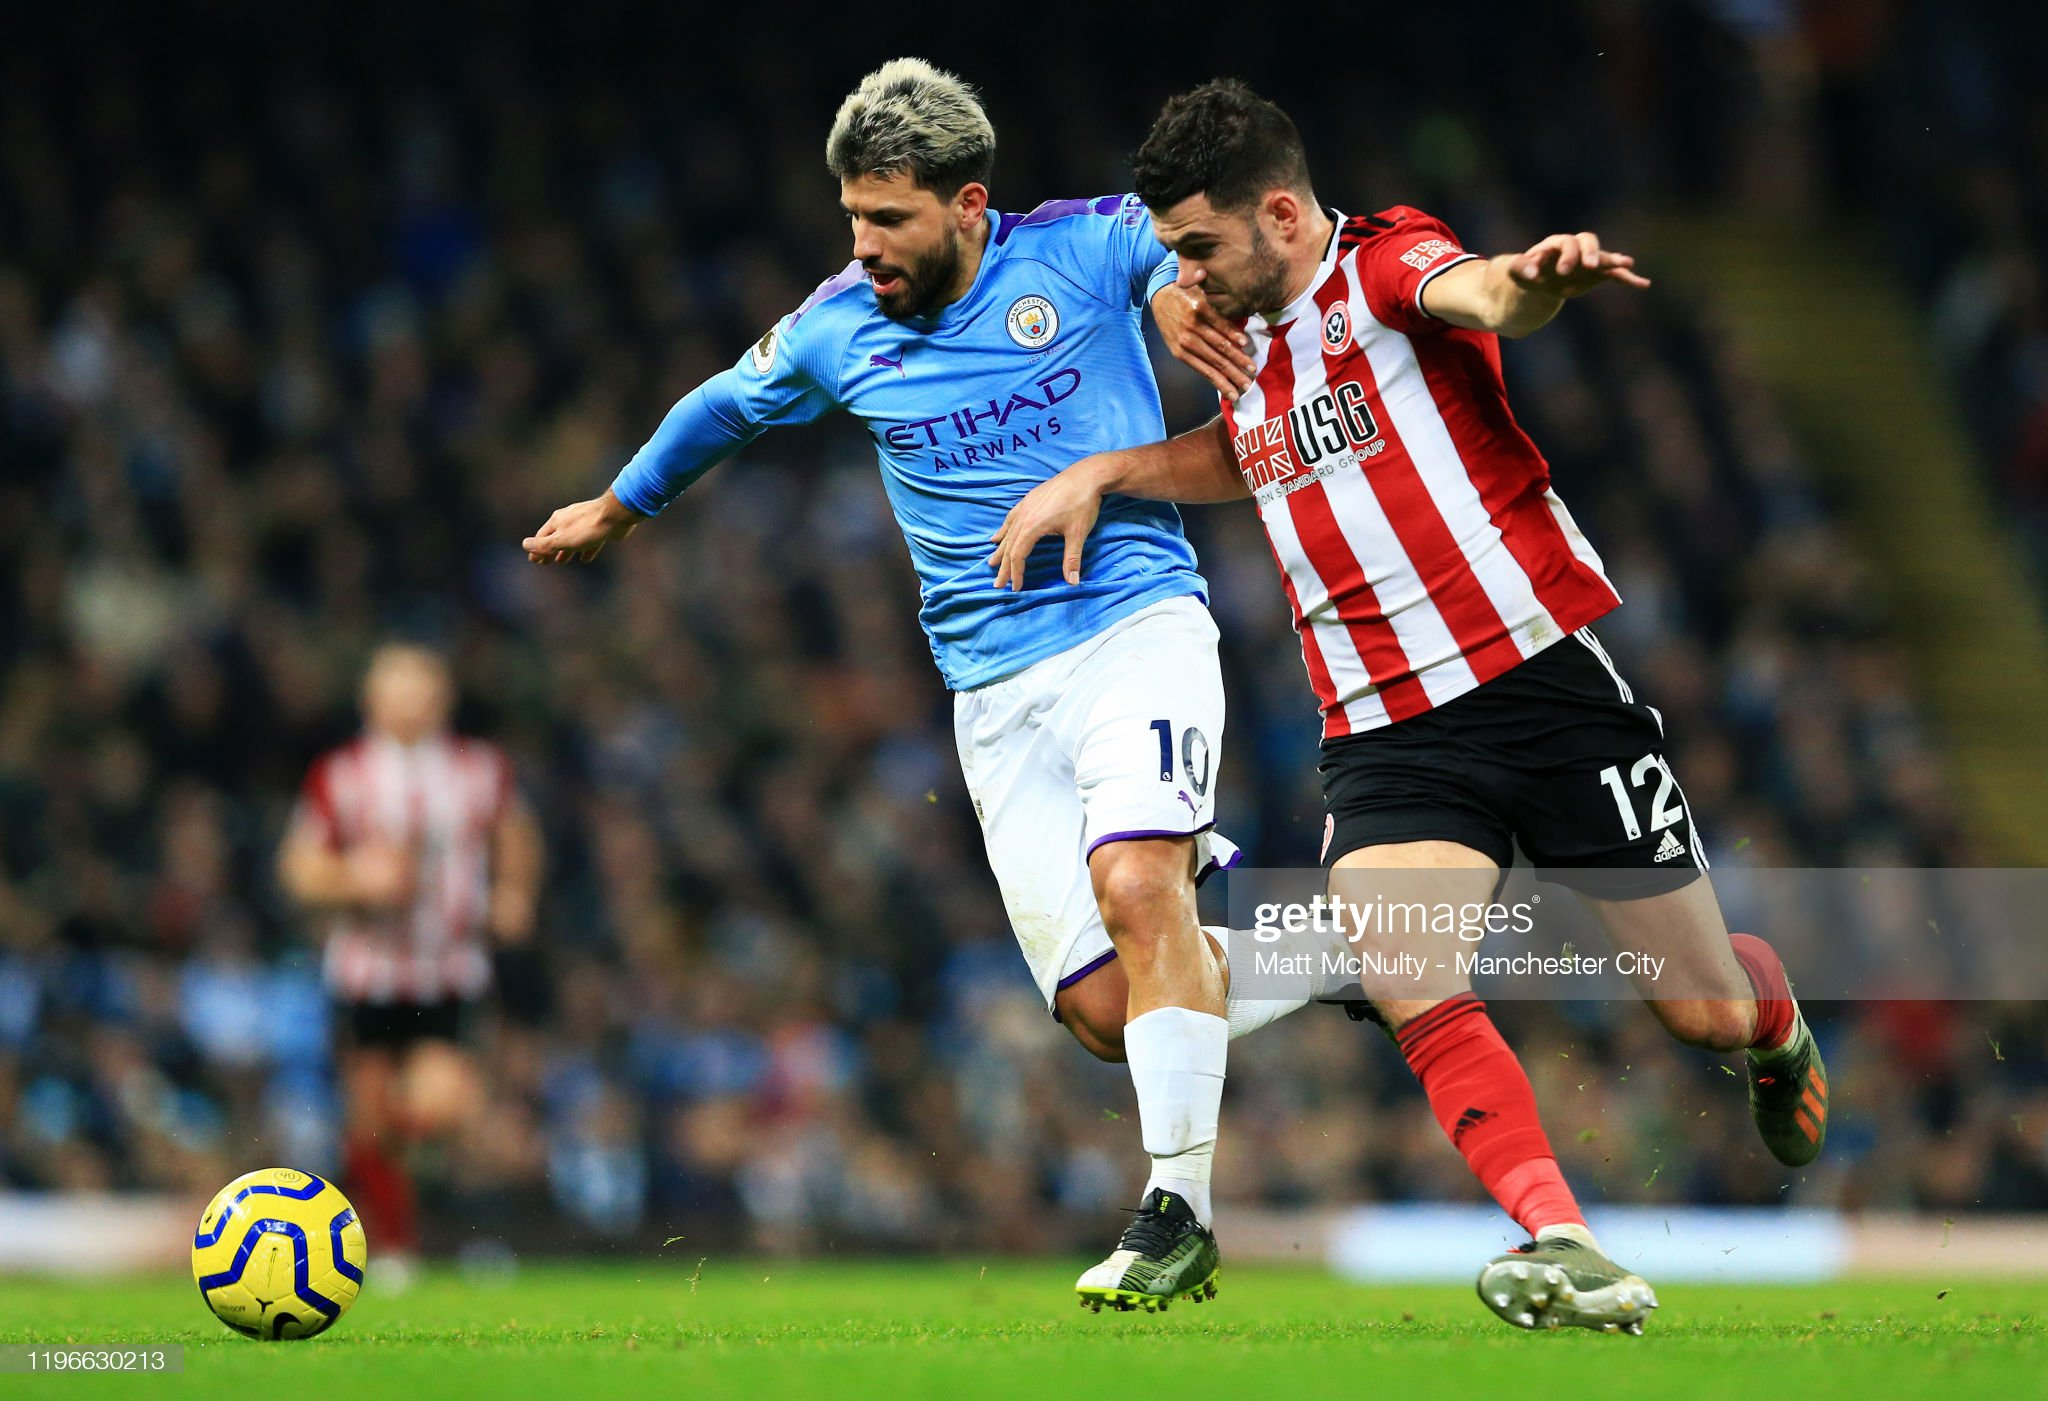 Sheffield United v Manchester City preview, prediction and odds